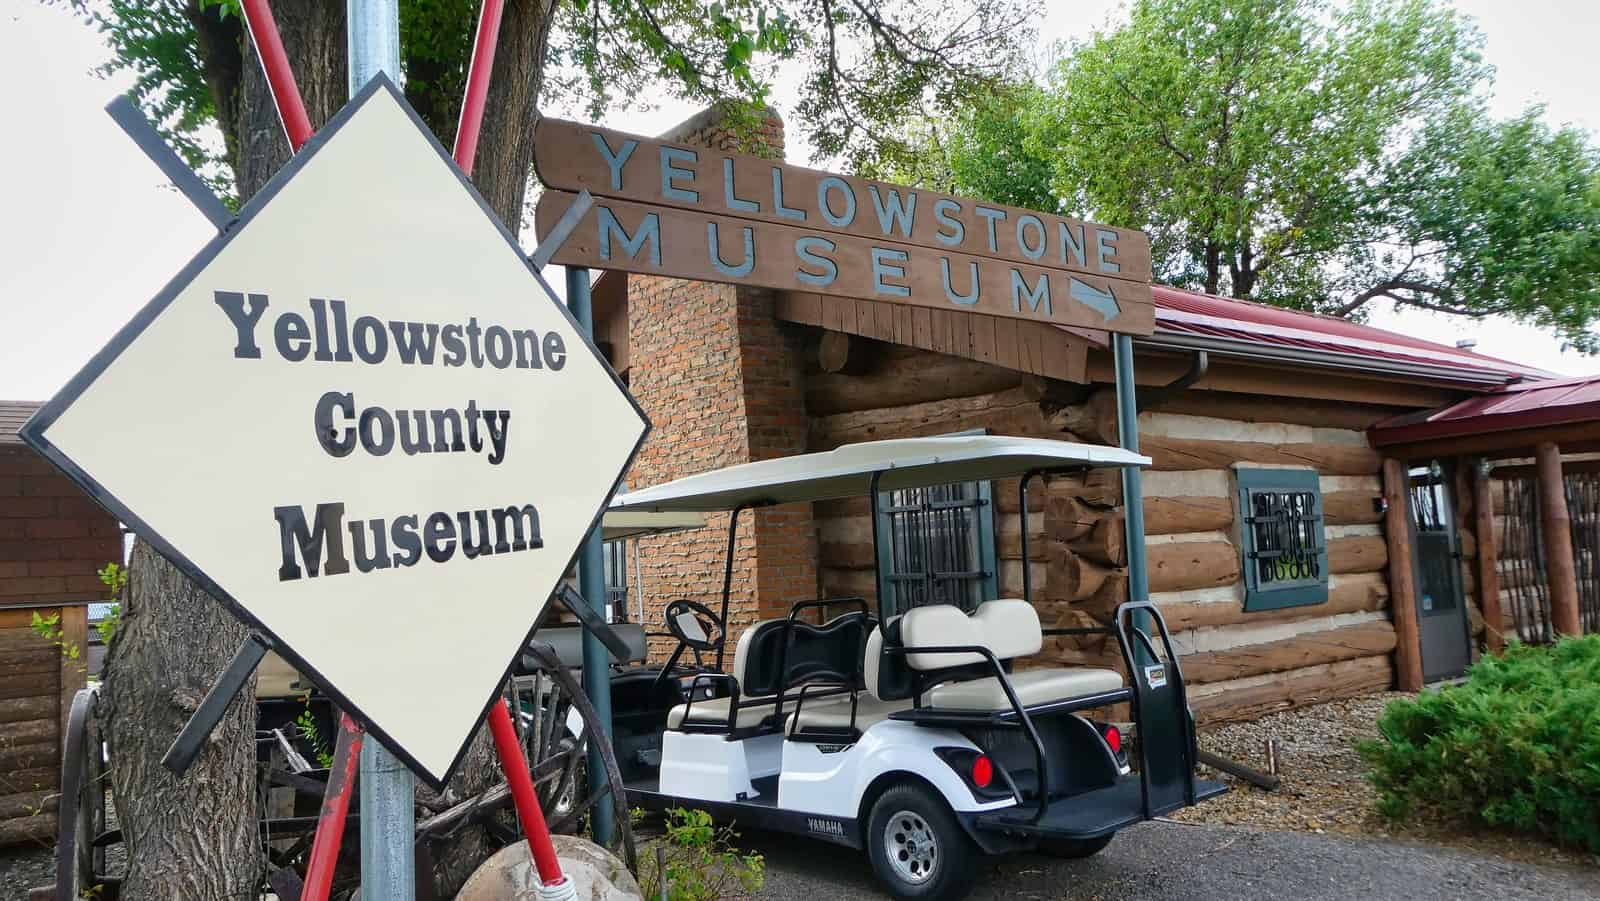 Yellowstone county musuem